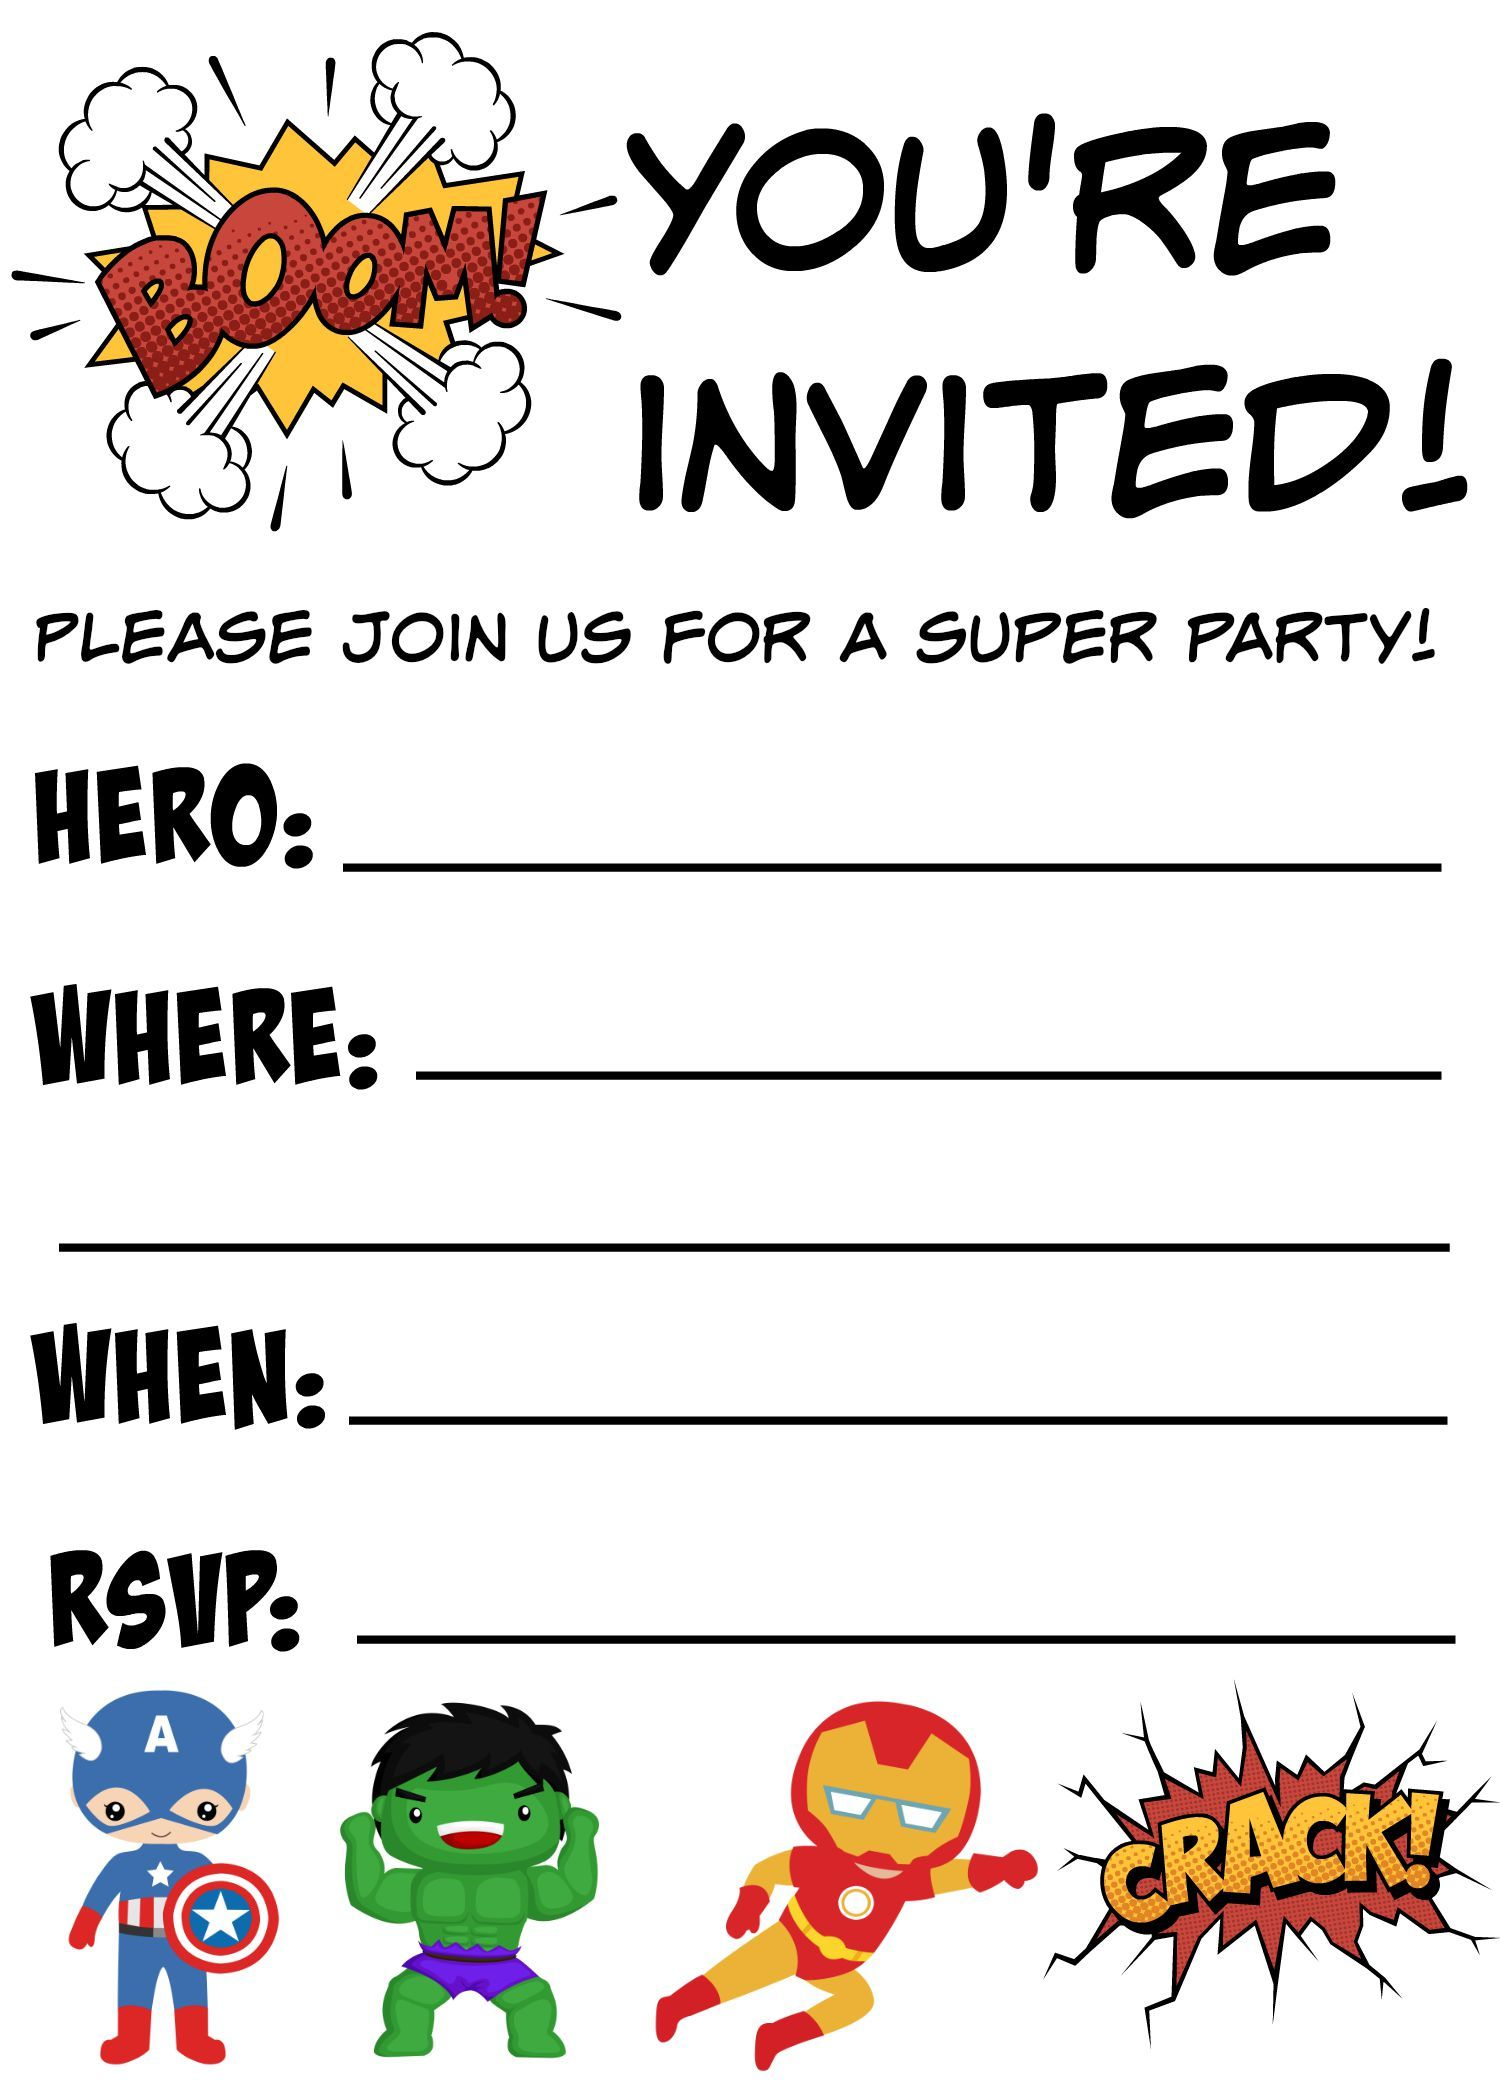 picture about Free Printable Superman Template named Cost-free Printable Superhero Birthday Invites Get-togethers